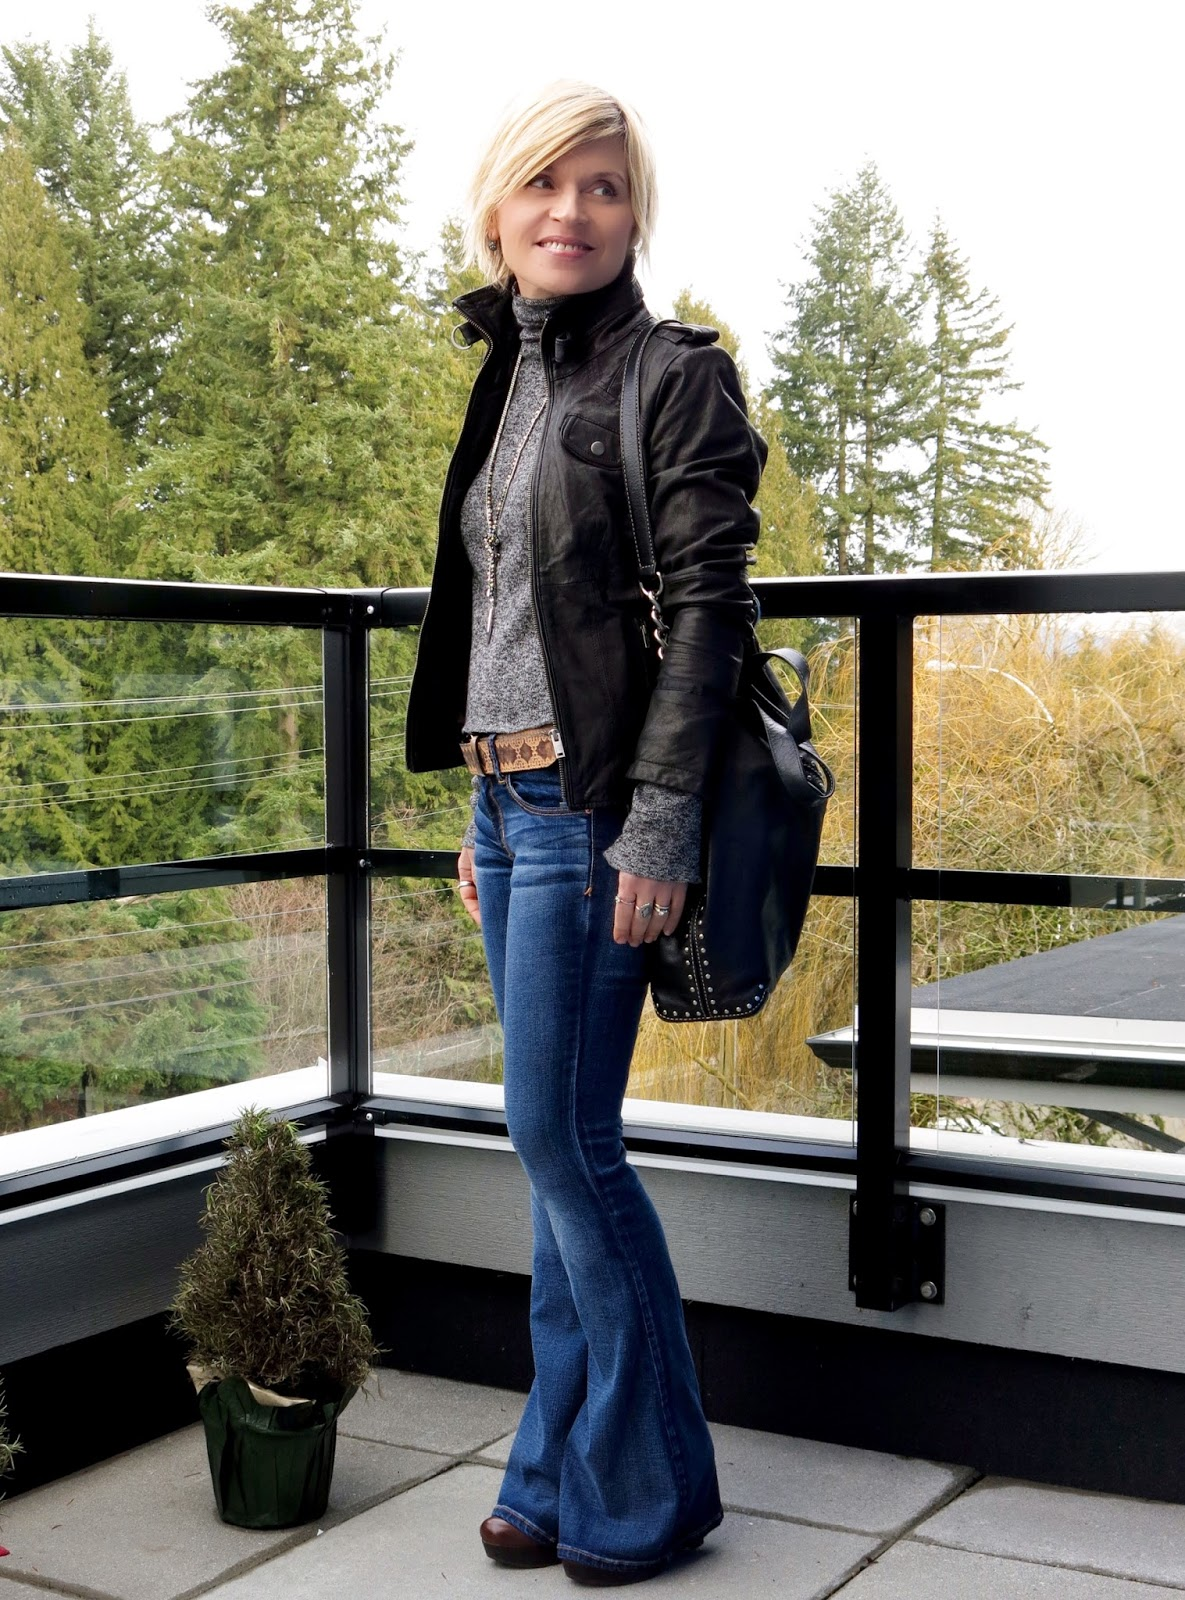 styling a motorcycle jacket with a turtleneck and and flare jeans